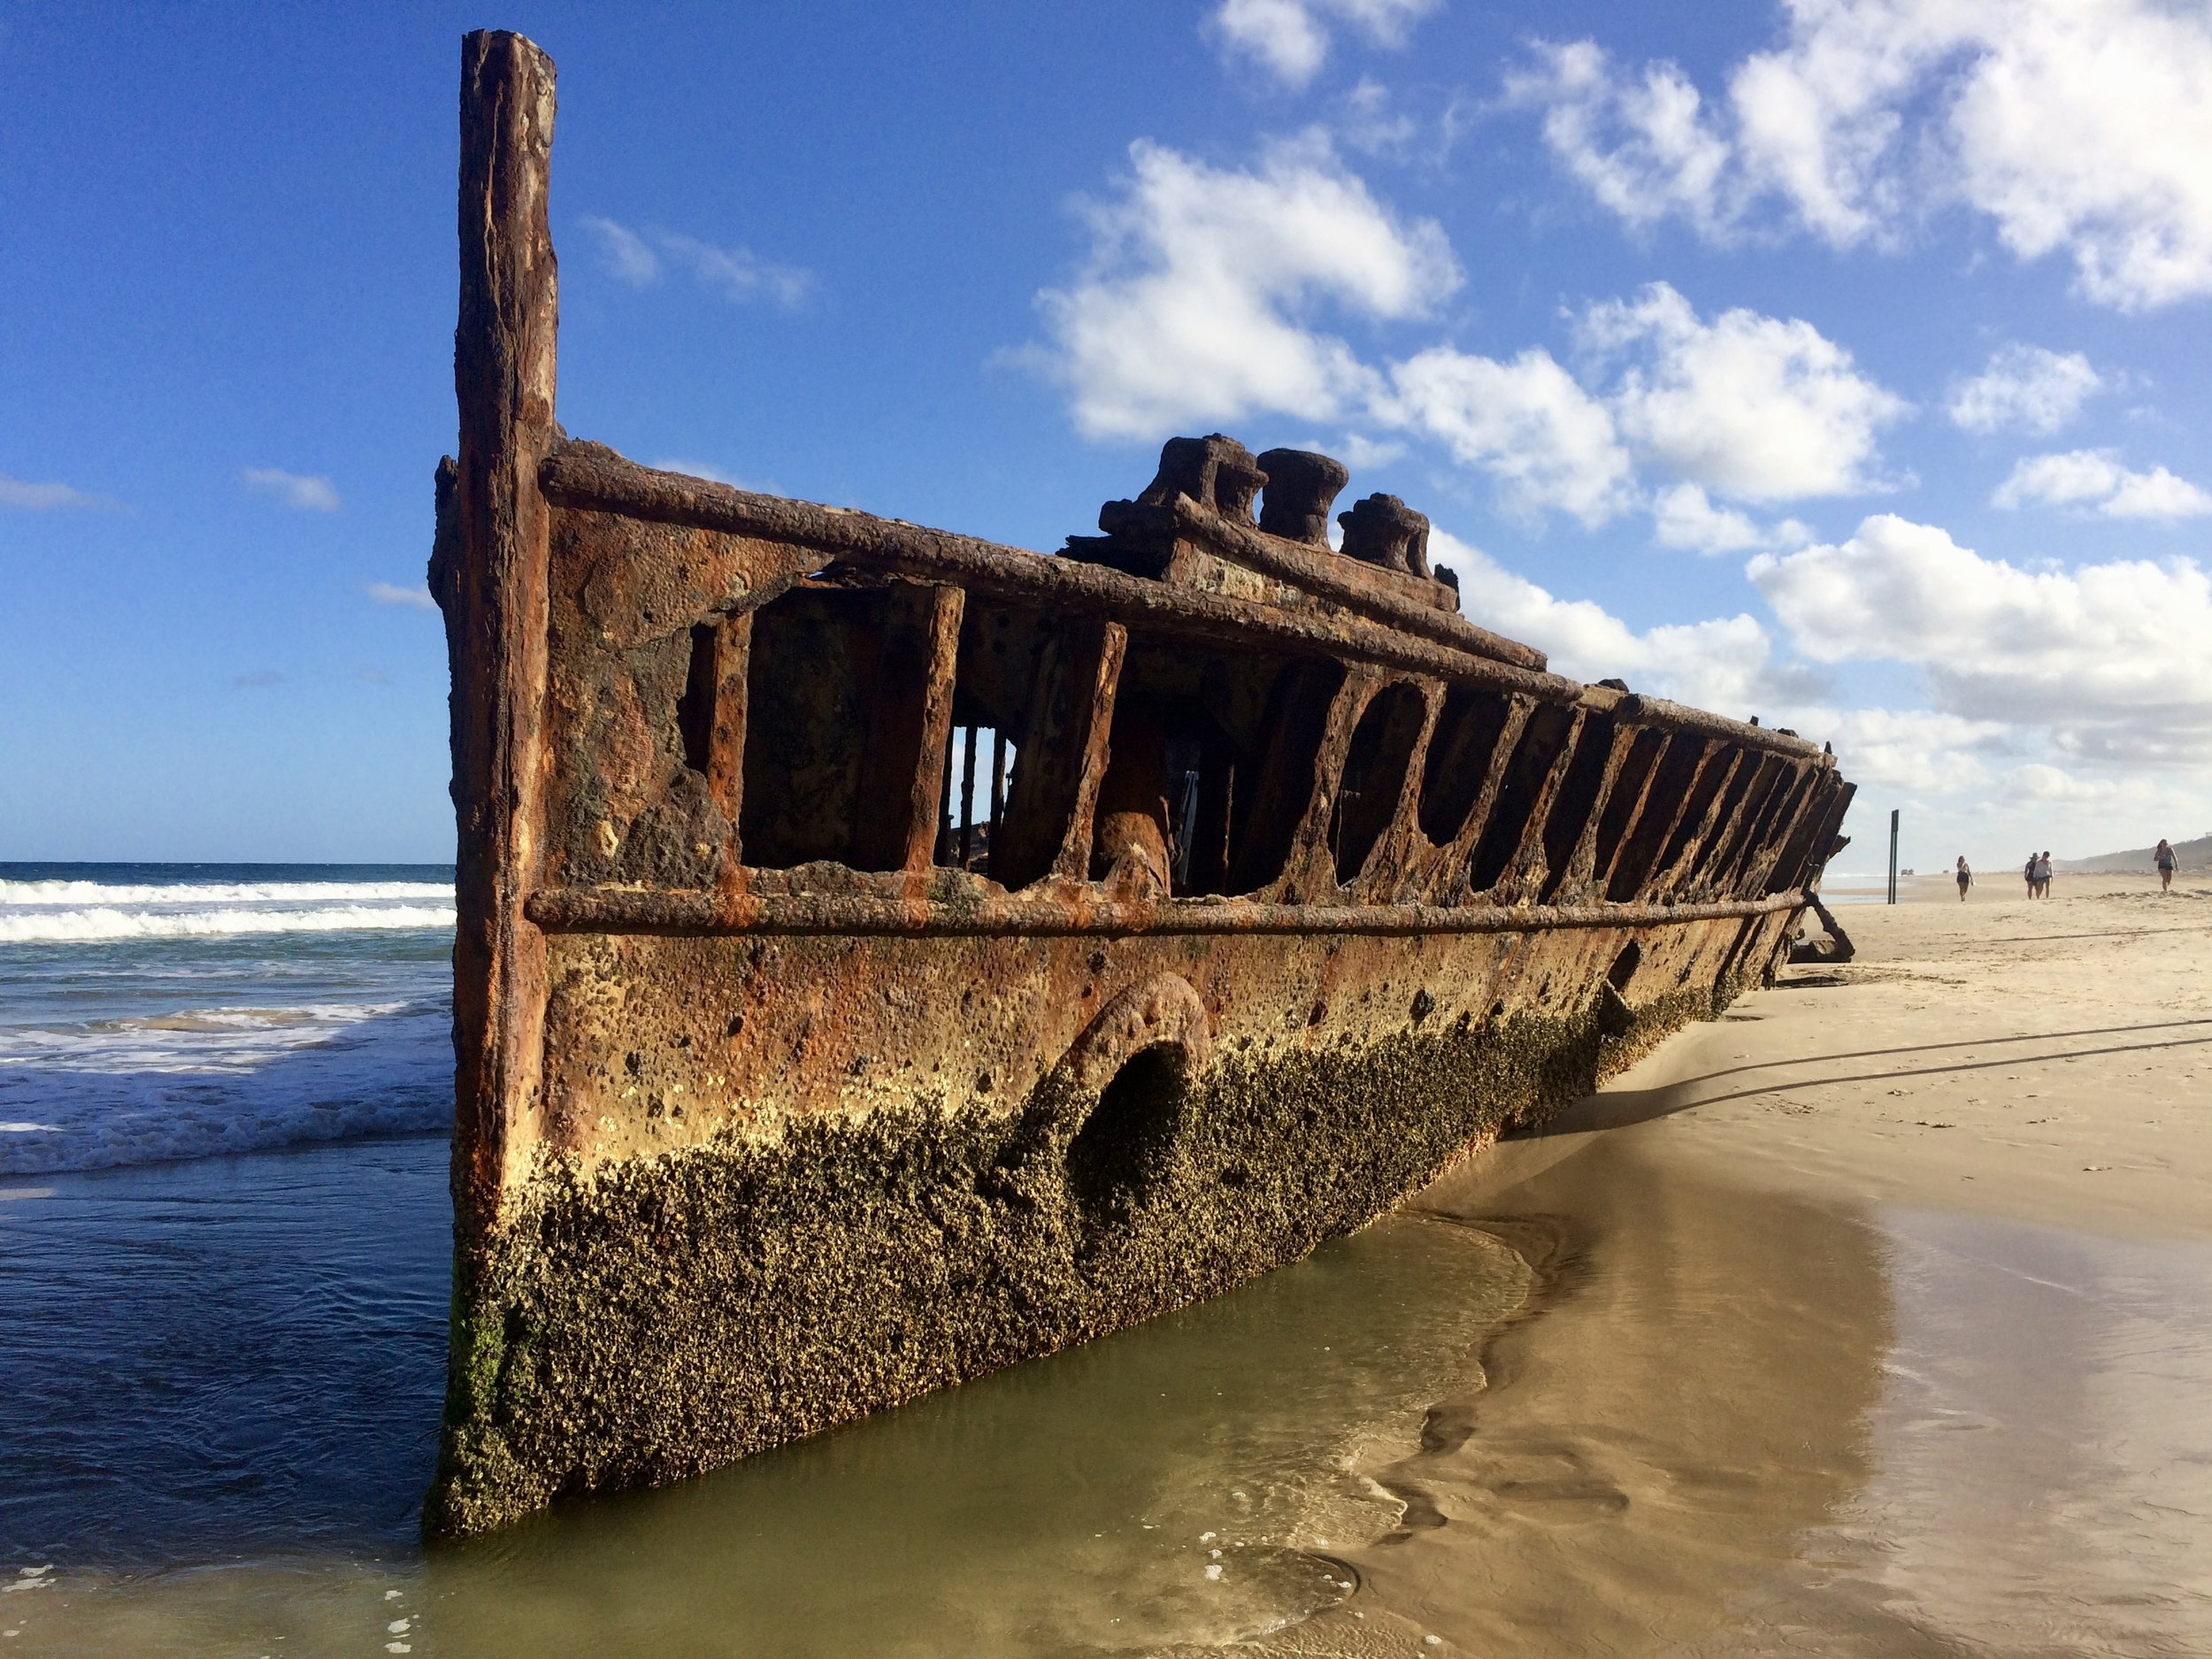 Maheno Shipwreck on the shores of Fraser Island.